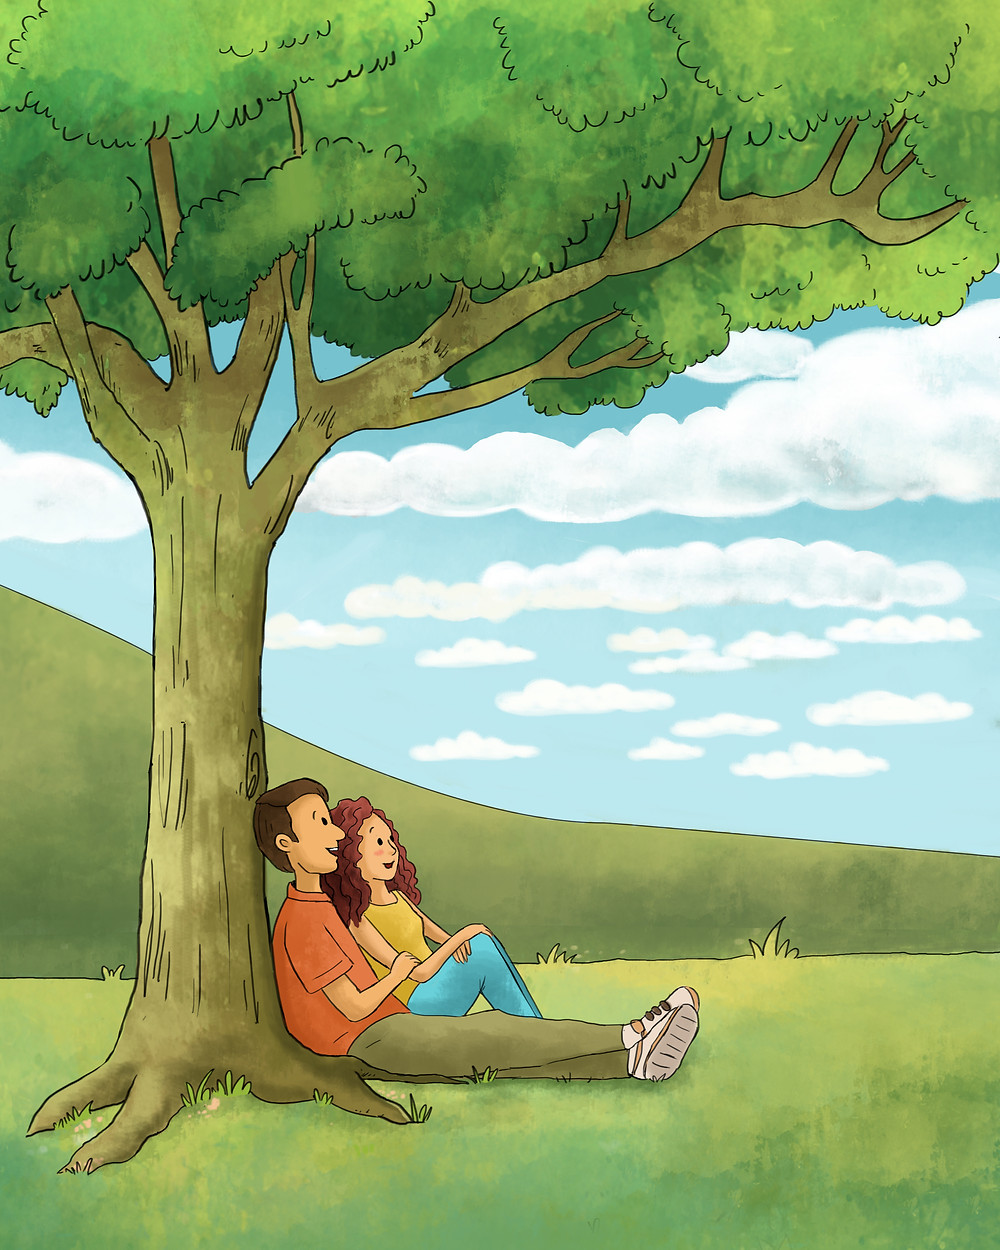 """Front cover illustration for """"You, Me, and a Tree"""", by Nejla Shojaie"""